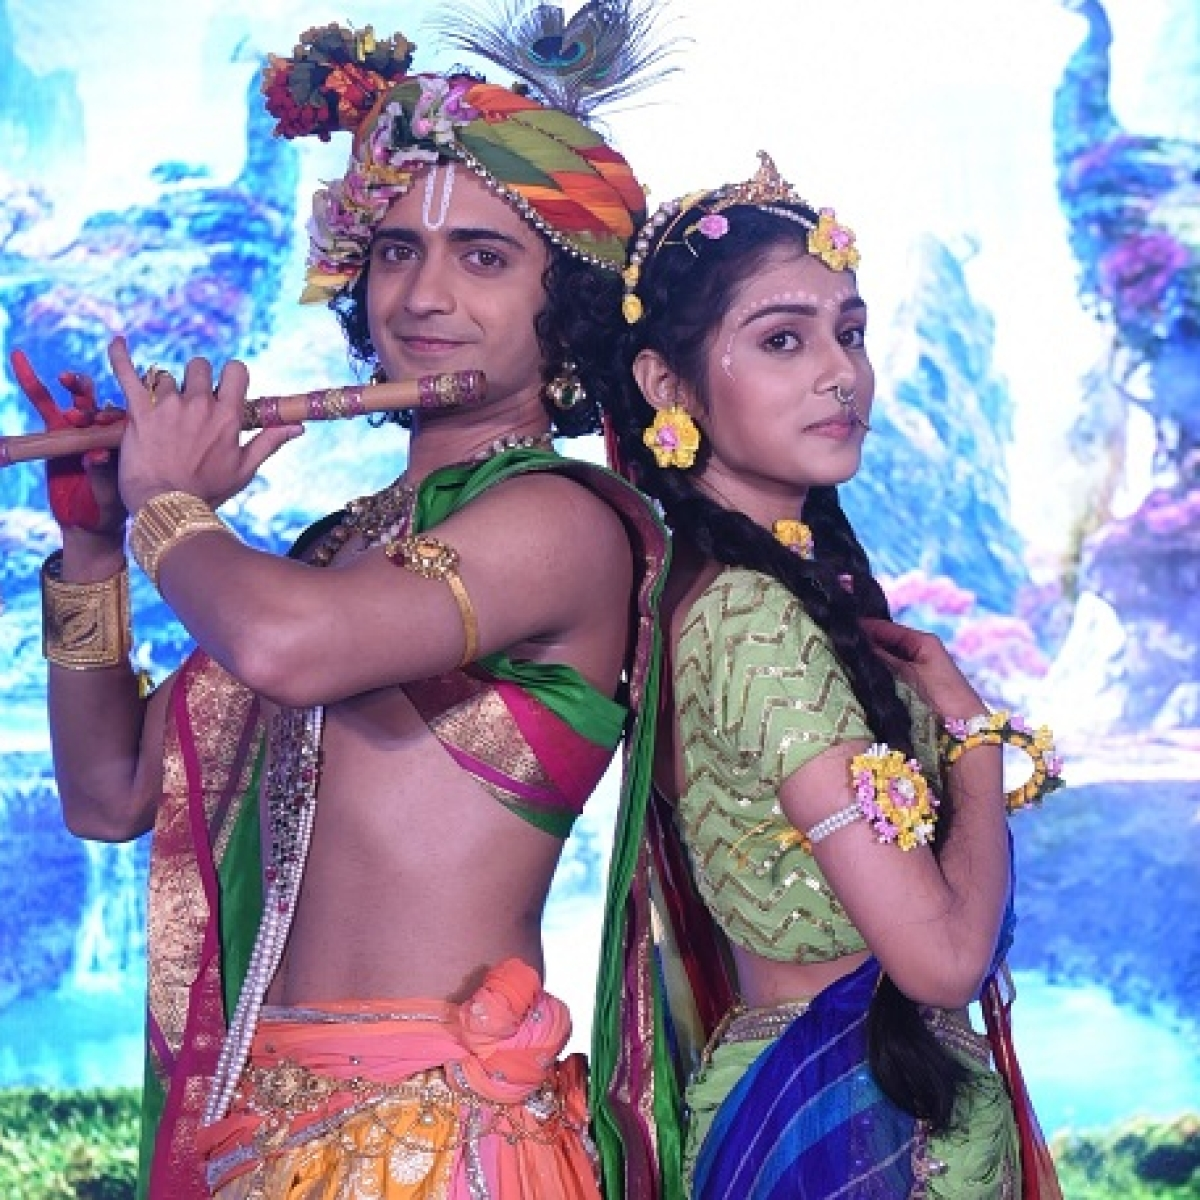 Covid-19 lockdown edition: From Ramayan to RadhaKrishn... mythological drama takes over small screen